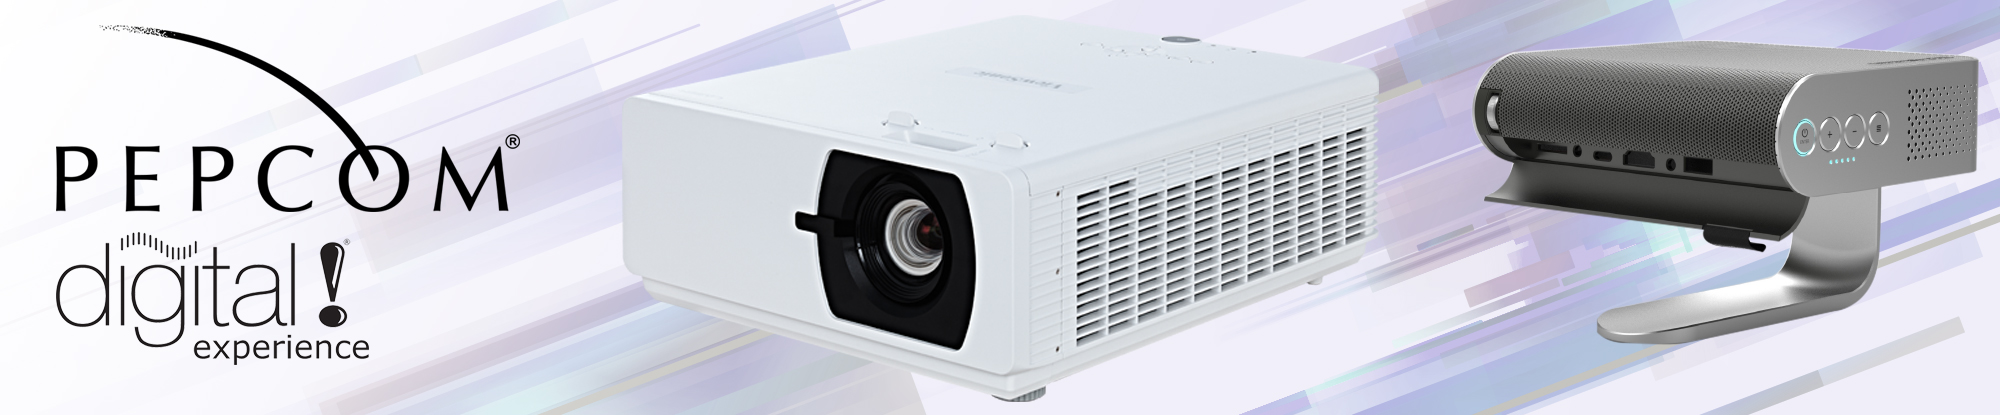 ViewSonic Expands its Projector Family with New High Brightness Laser Projectors for Professional Installations and a Portable Pico-Based LED Projector for Entertainment